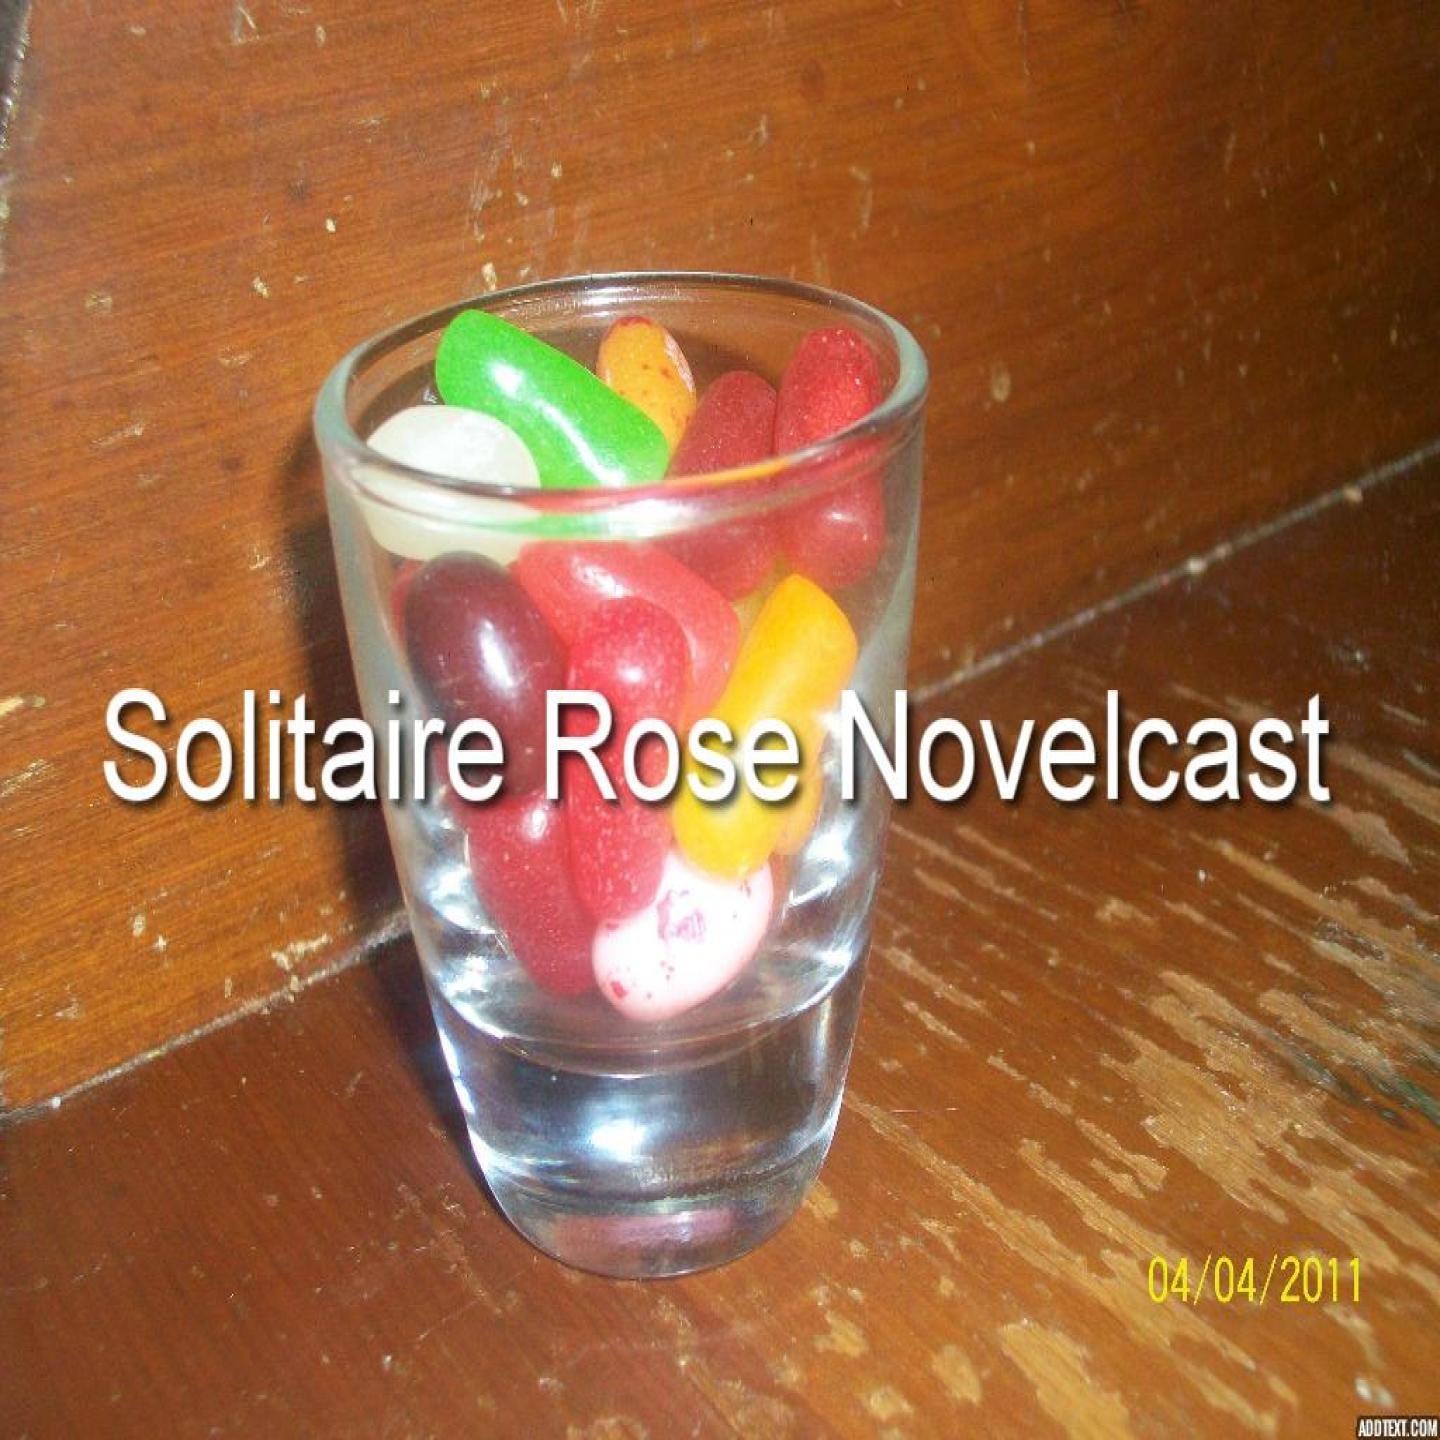 Solitaire Rose Novelcast